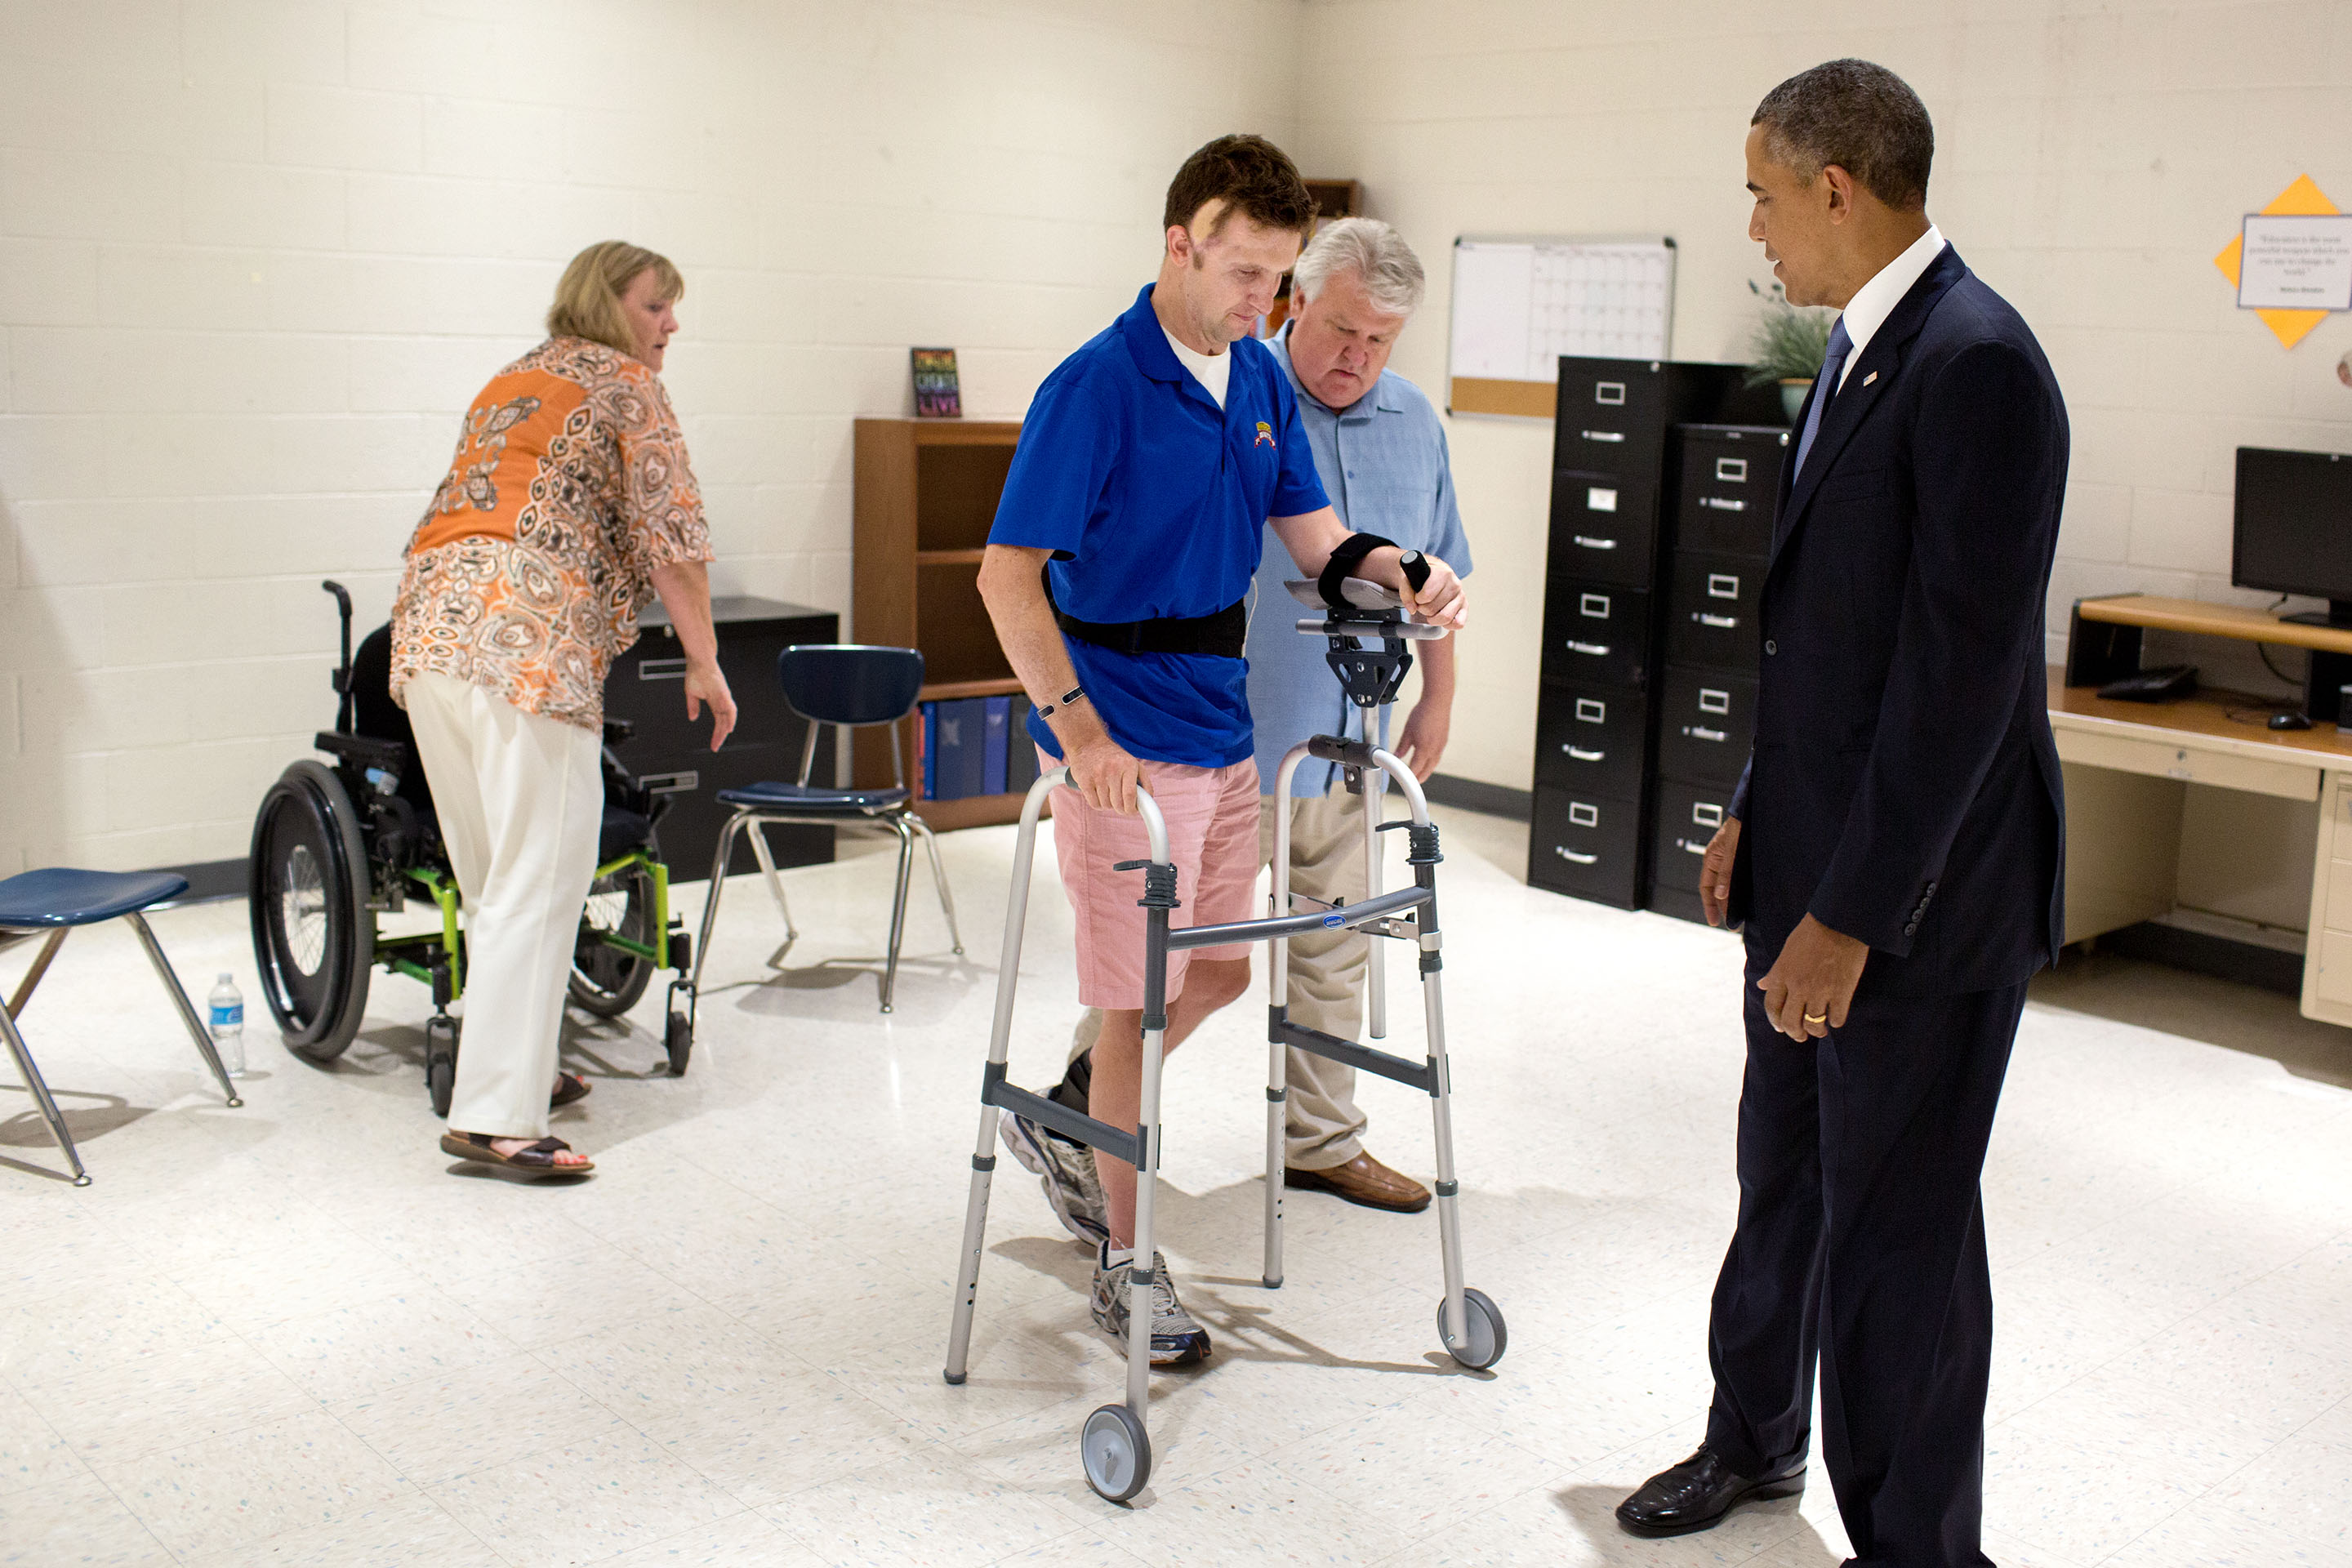 Aug. 6, 2013: Cory walks across a classroom as the President watches in Arizona. (Official White House Photo by Pete Souza)